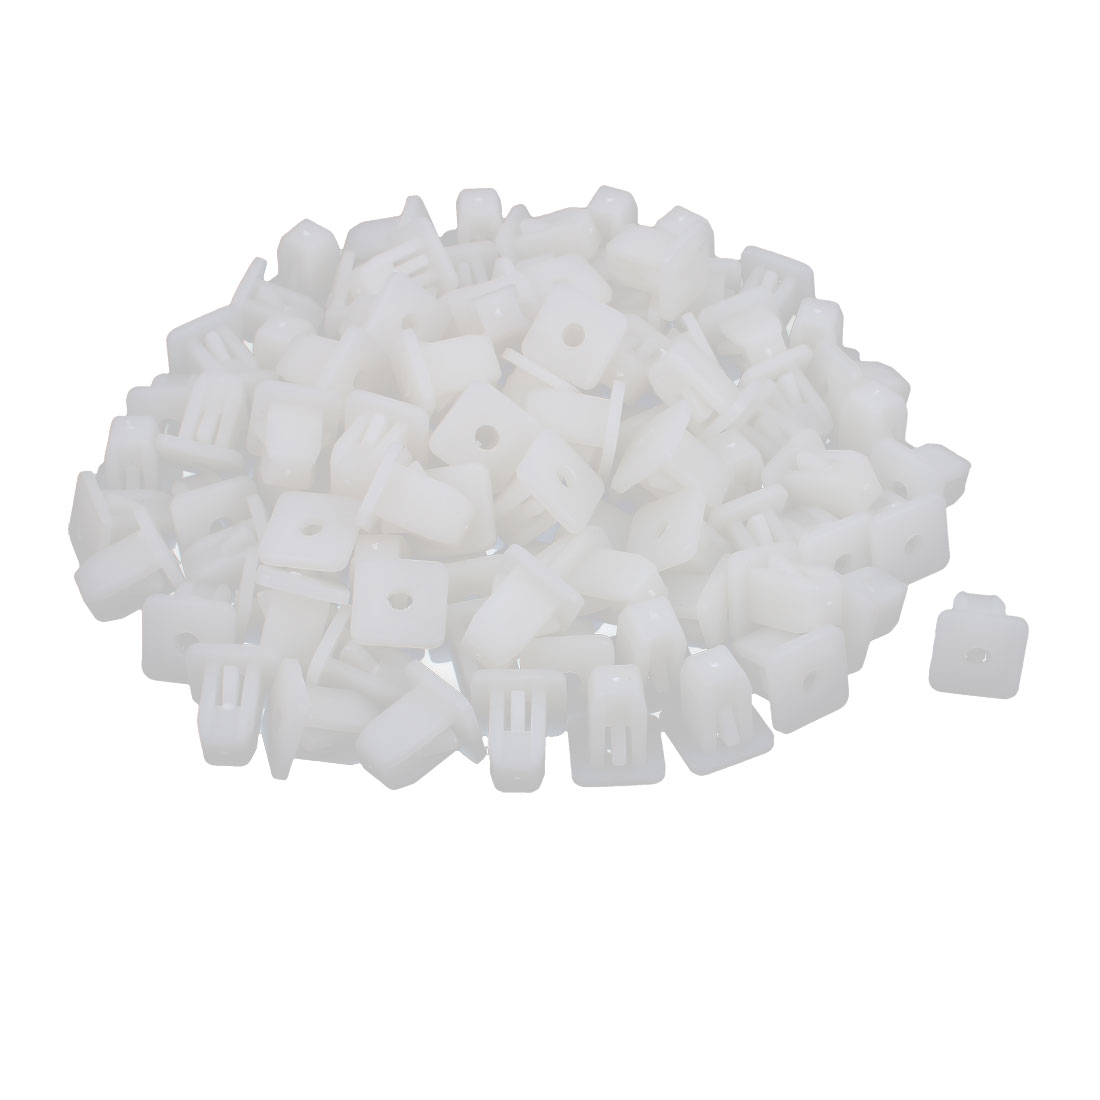 125 Pcs White Plastic Bumper Square Retainer Fastener Clips 3mm Hole Dia